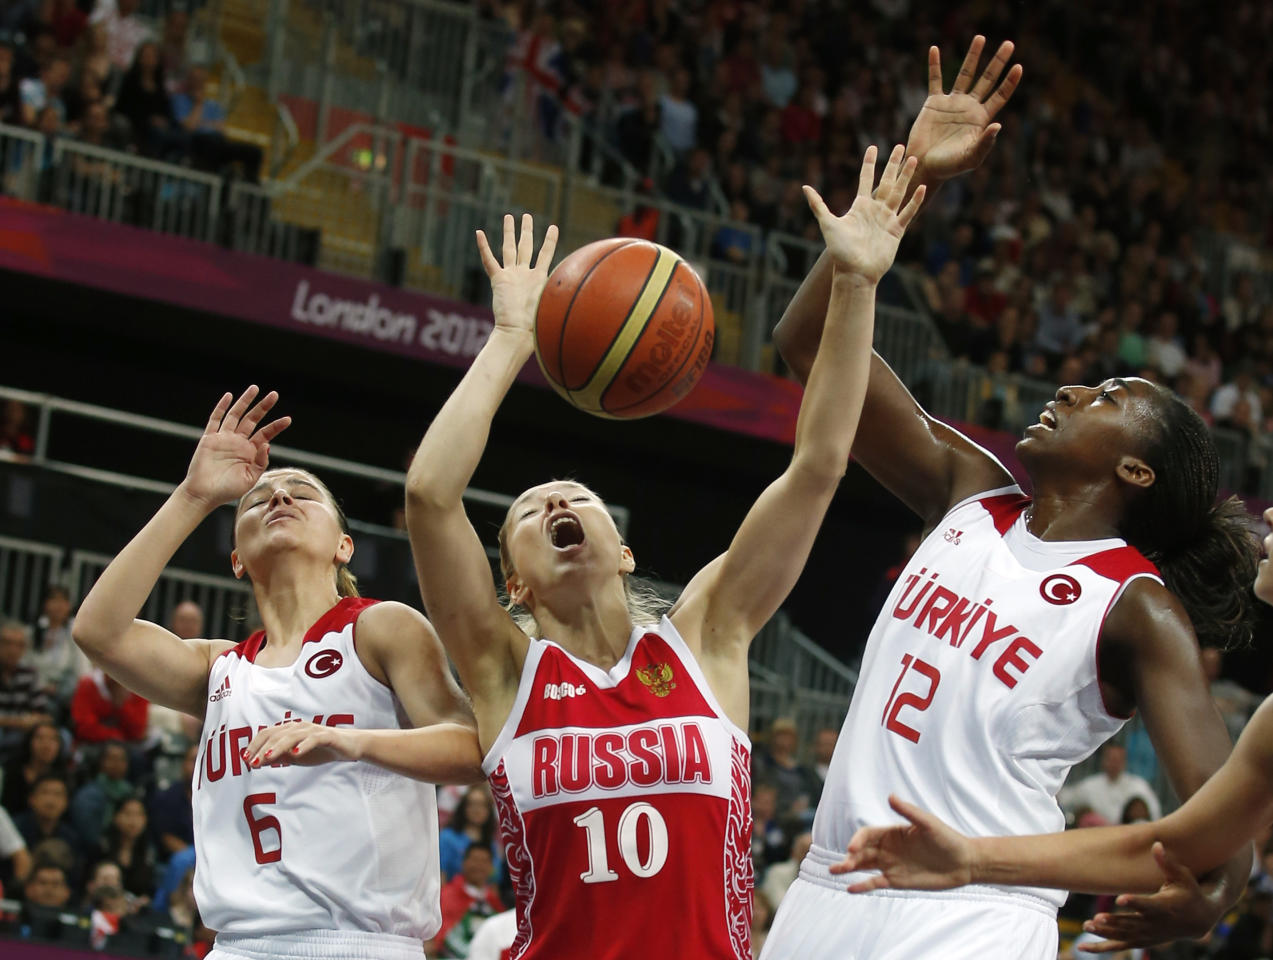 Russia's Ilona Korstin (10) is guarded by Turkey's Birsel Vardarli (6) and Kuanitra Hollingsvorth (12) during the women's quarterfinal basketball match at the Basketball Arena in London during the London 2012 Olympic Games August 7, 2012. REUTERS/Sergio Perez (BRITAIN  - Tags: SPORT OLYMPICS SPORT BASKETBALL)